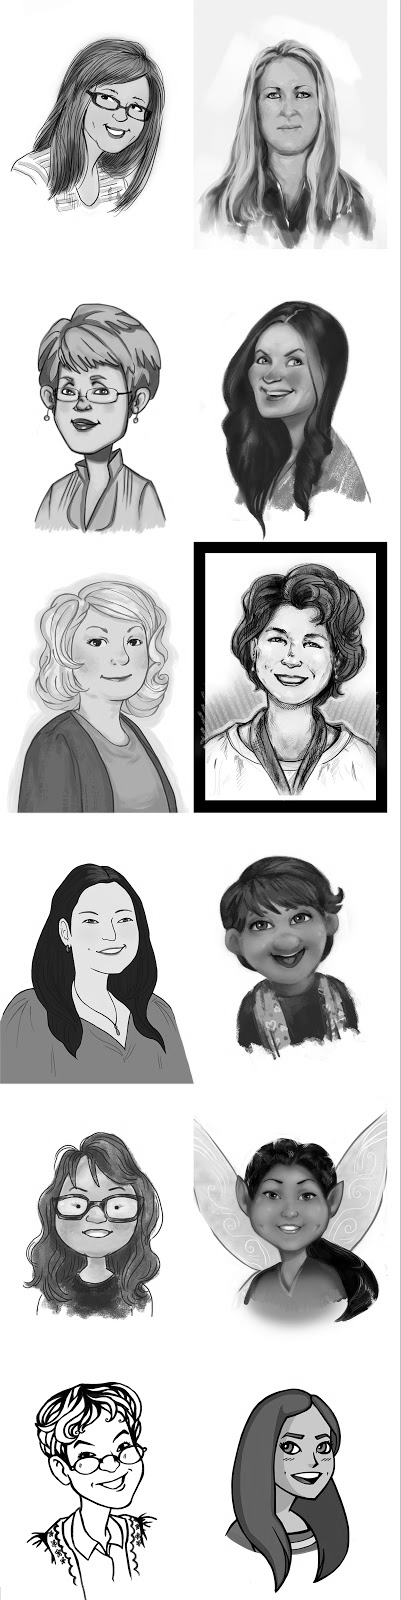 StaffPortraits-2.jpg